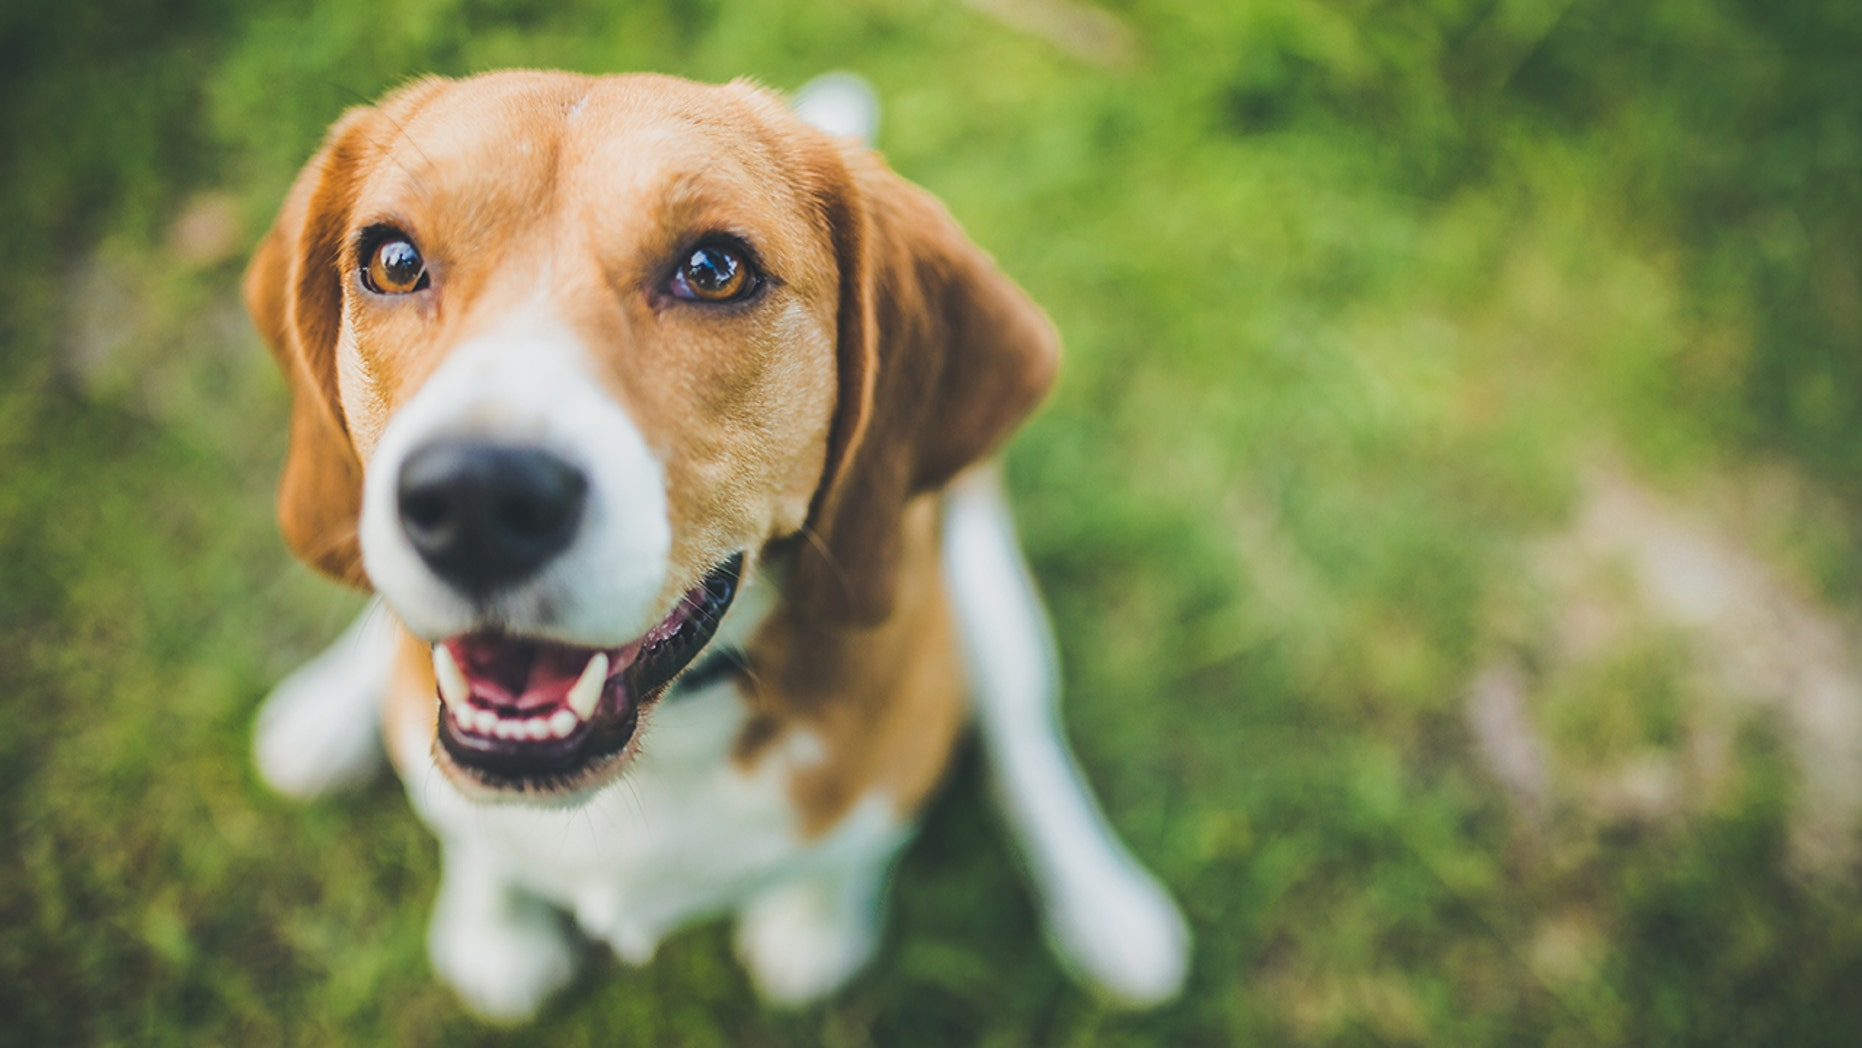 A new study presented on Monday has found that beagles can be trained to detect lung cancer from human blood samples with 97 percent accuracy. (Stock image)